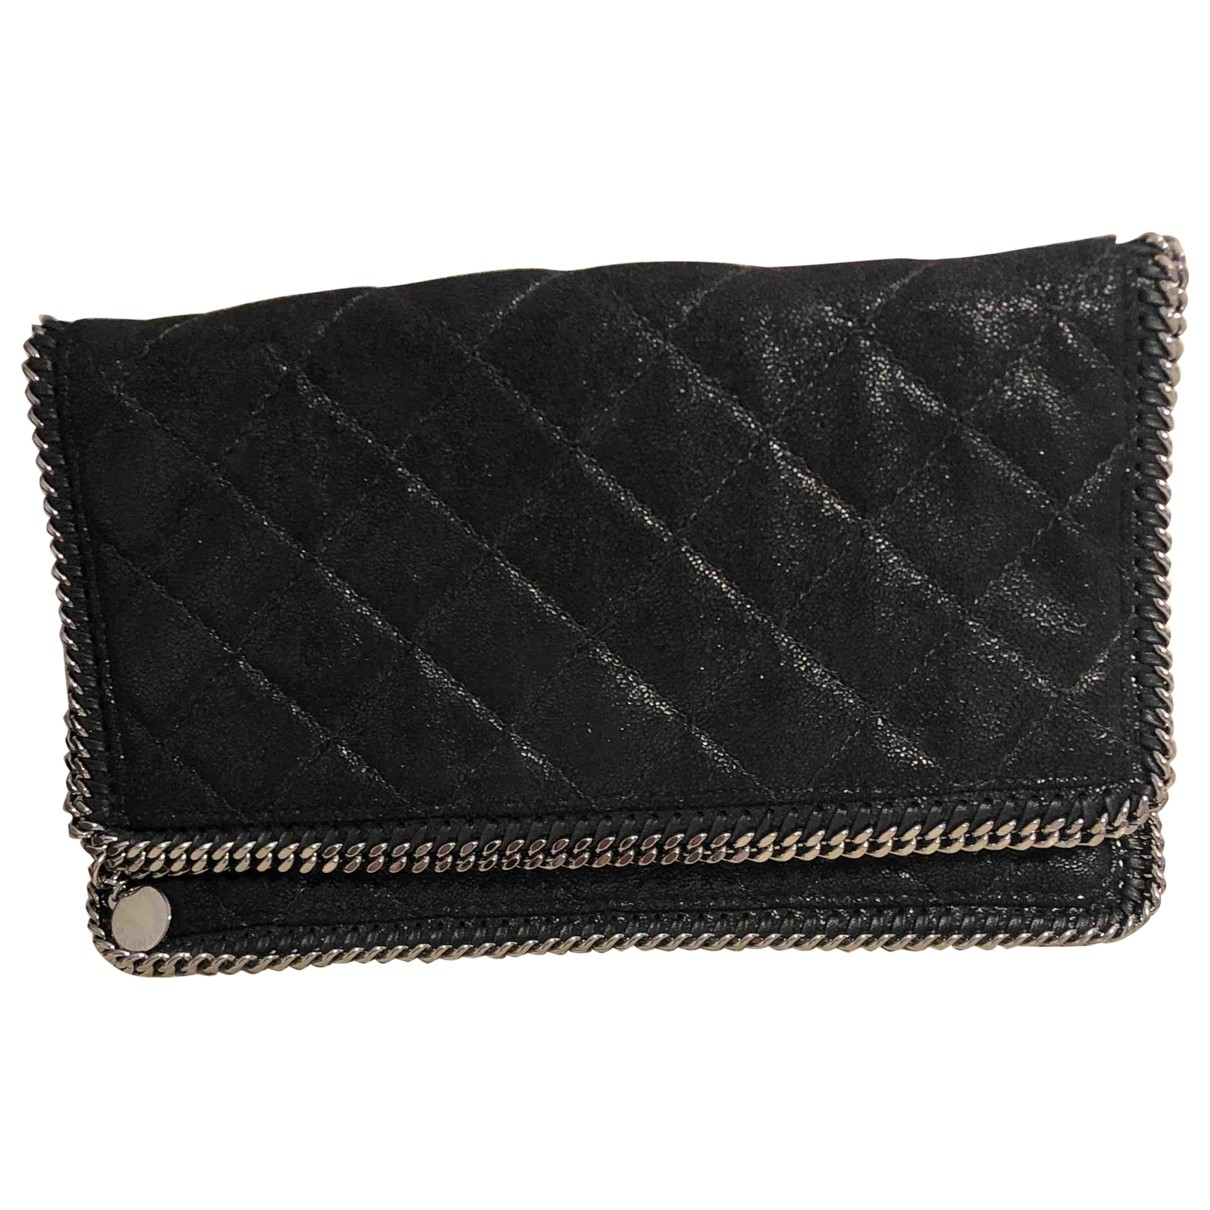 Stella Mccartney Falabella Black Clutch bag for Women \N